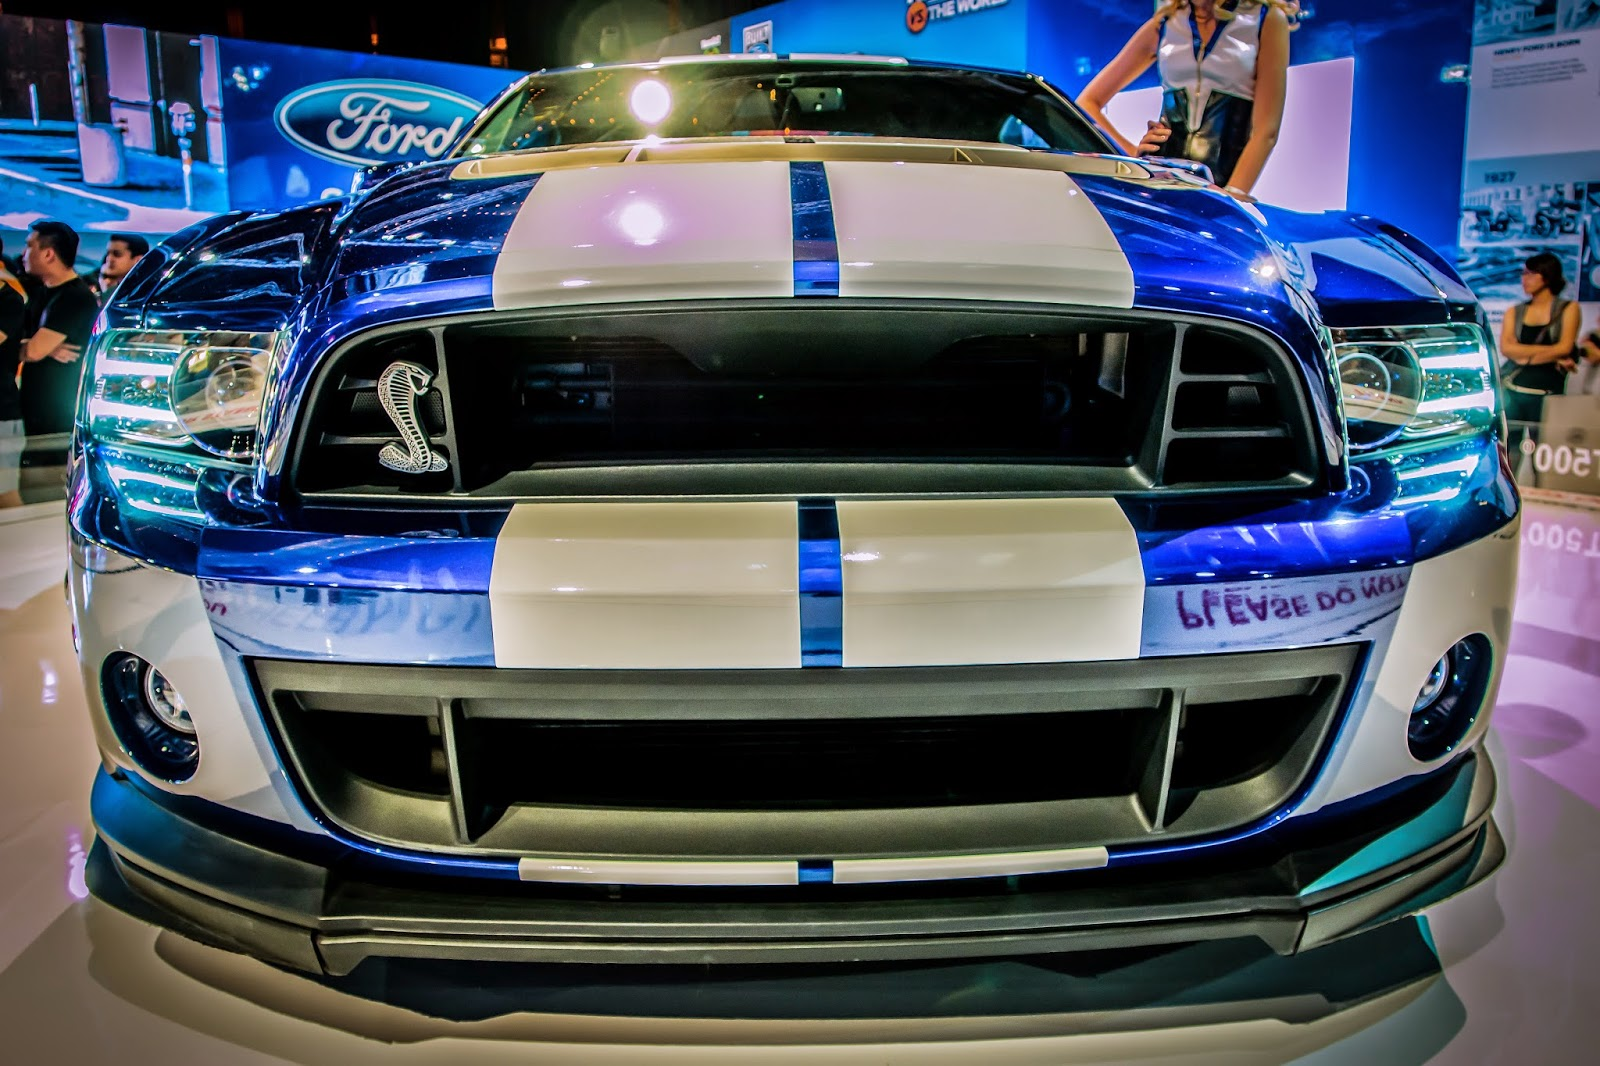 Car Shows Composition Tips Weekend Photography - Car show photography